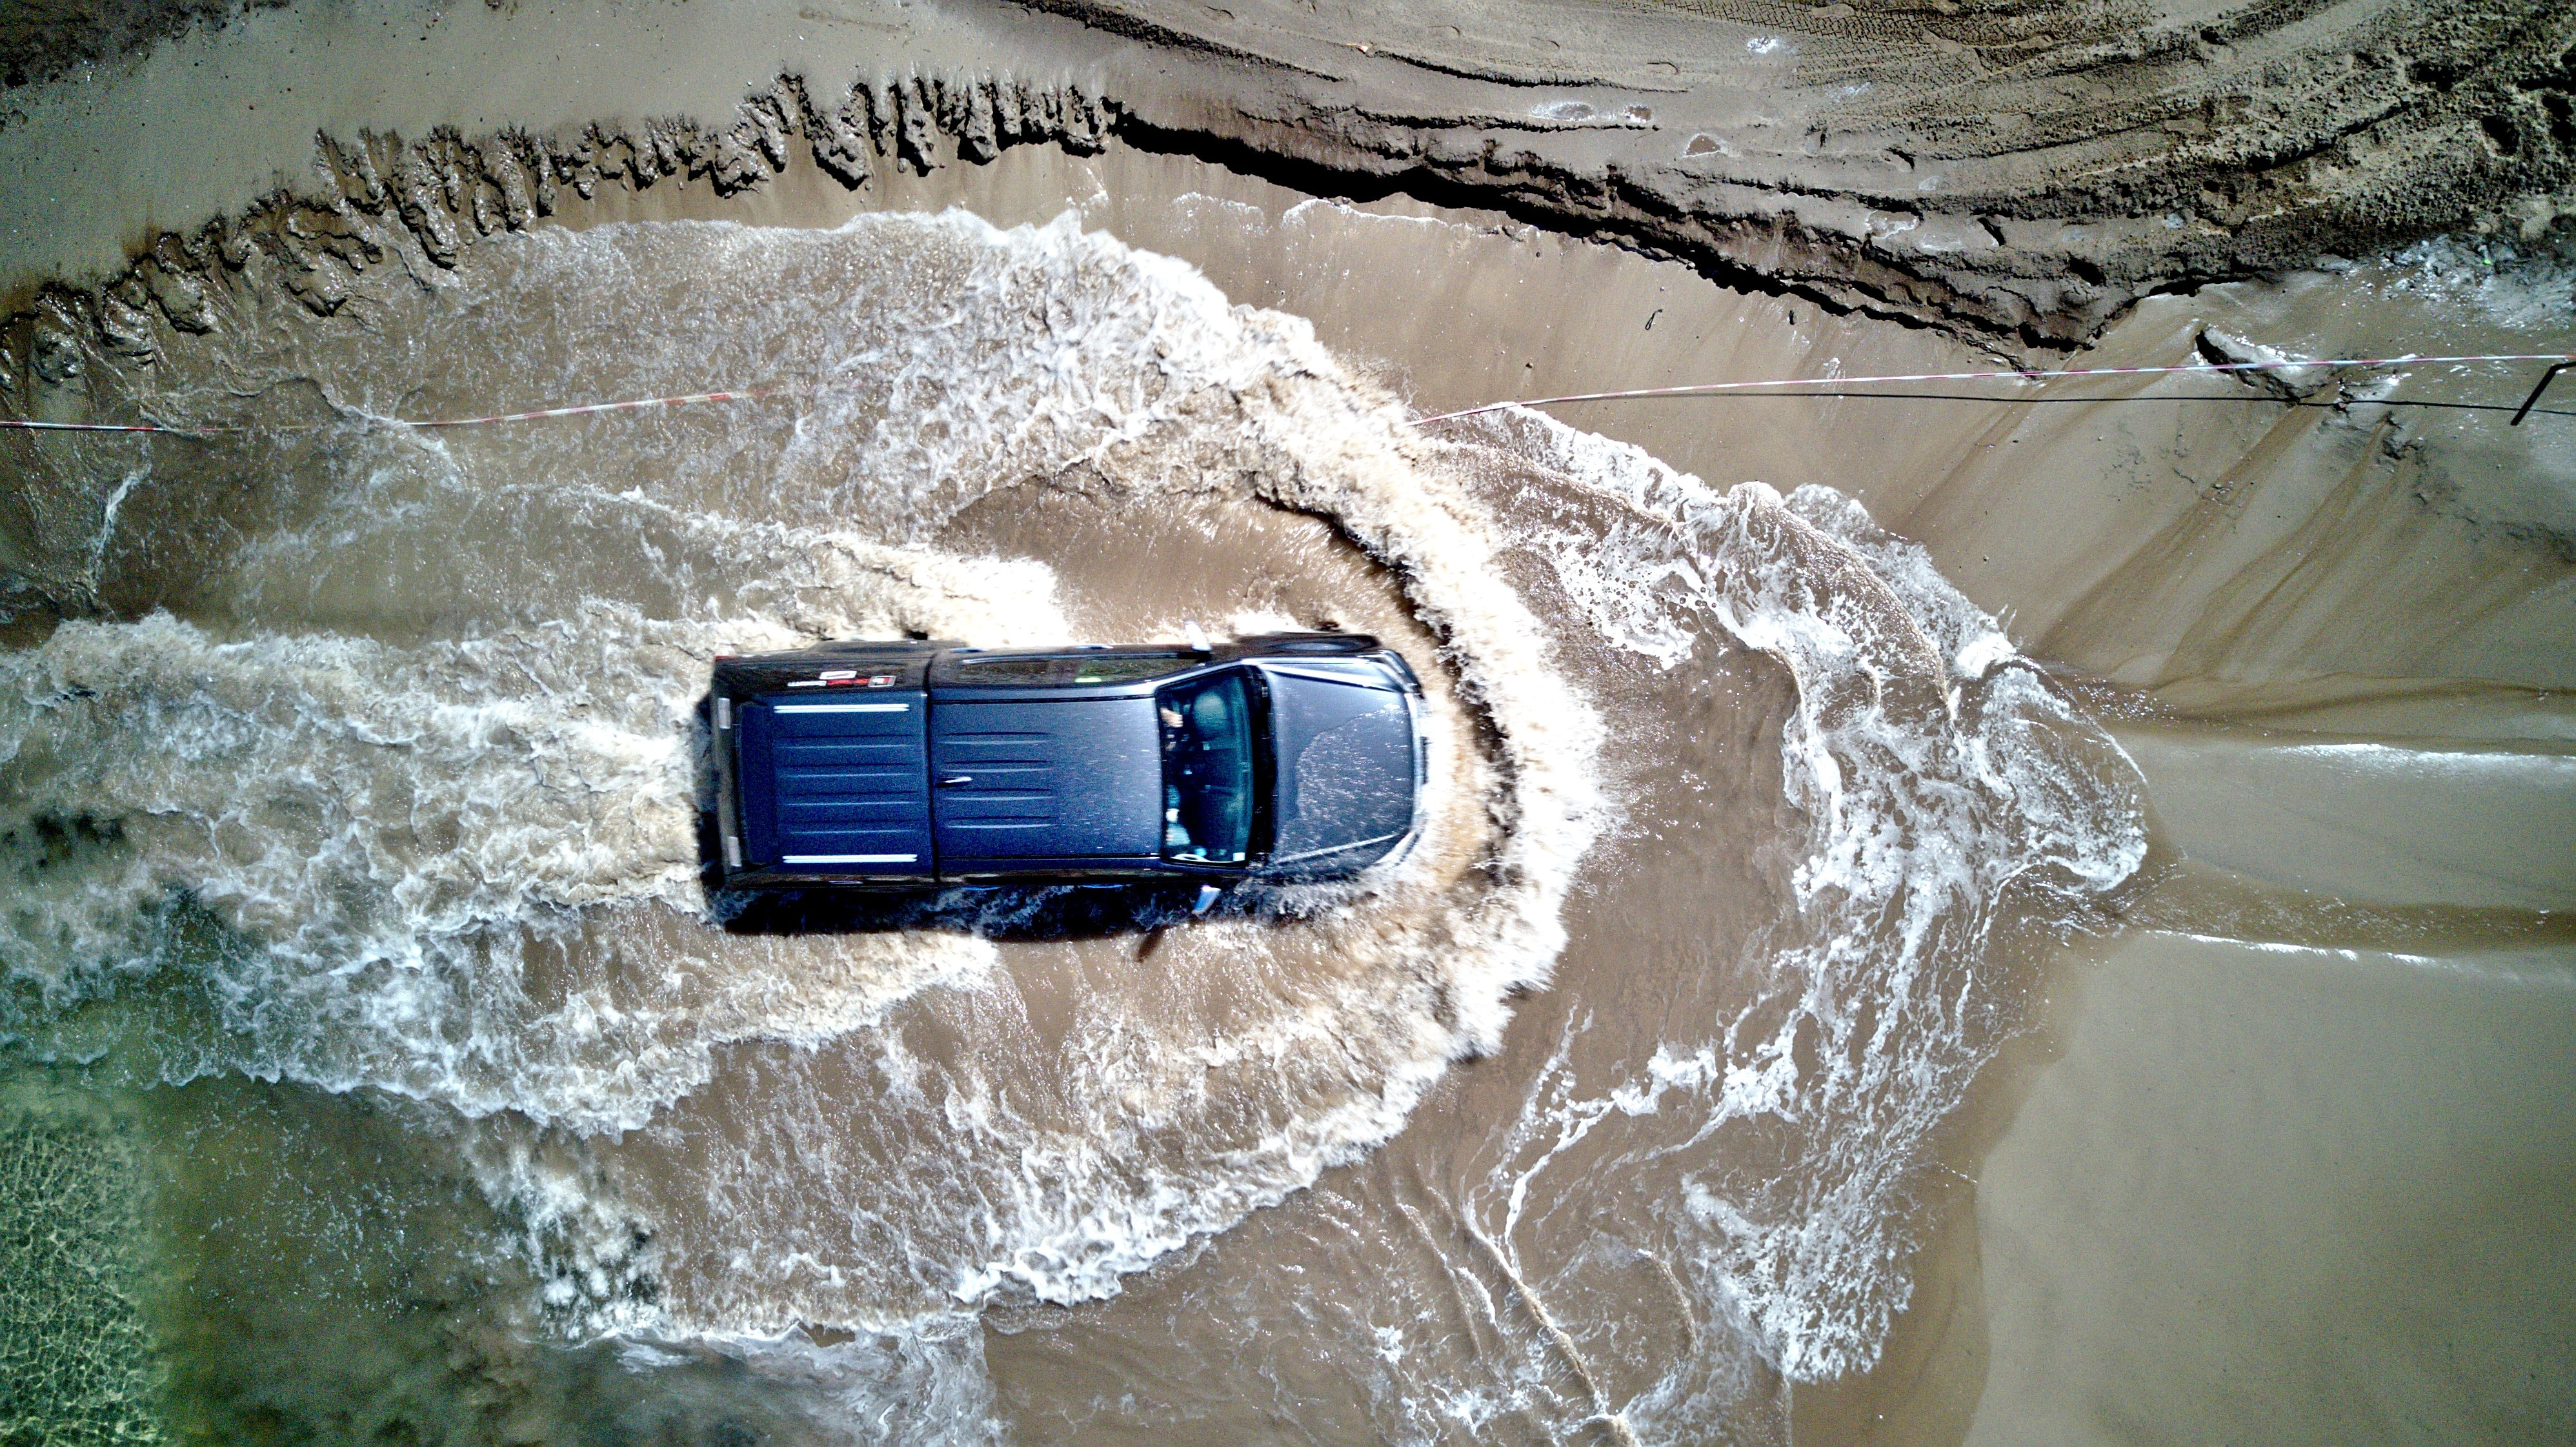 top view photography of pickup truck in puddle of water